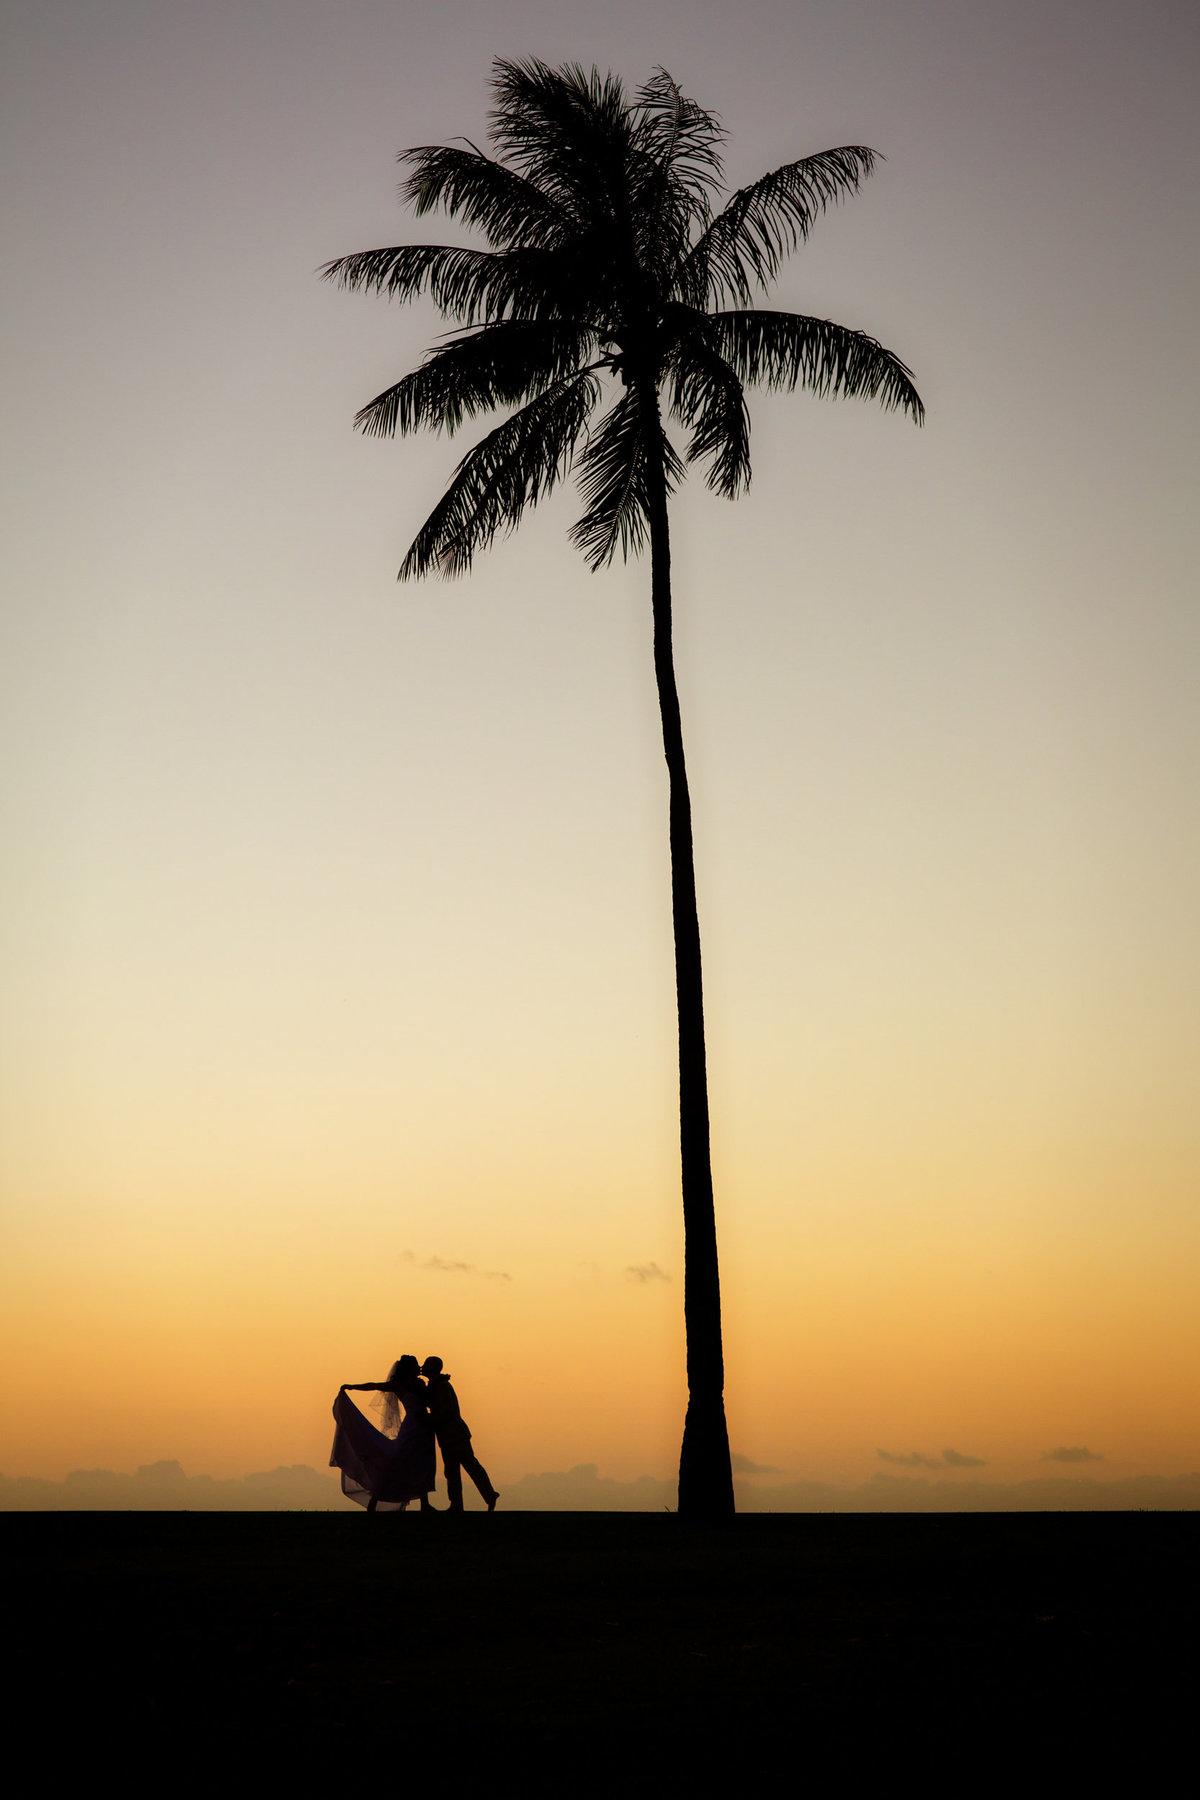 Award Winning silhouette image in hawaii